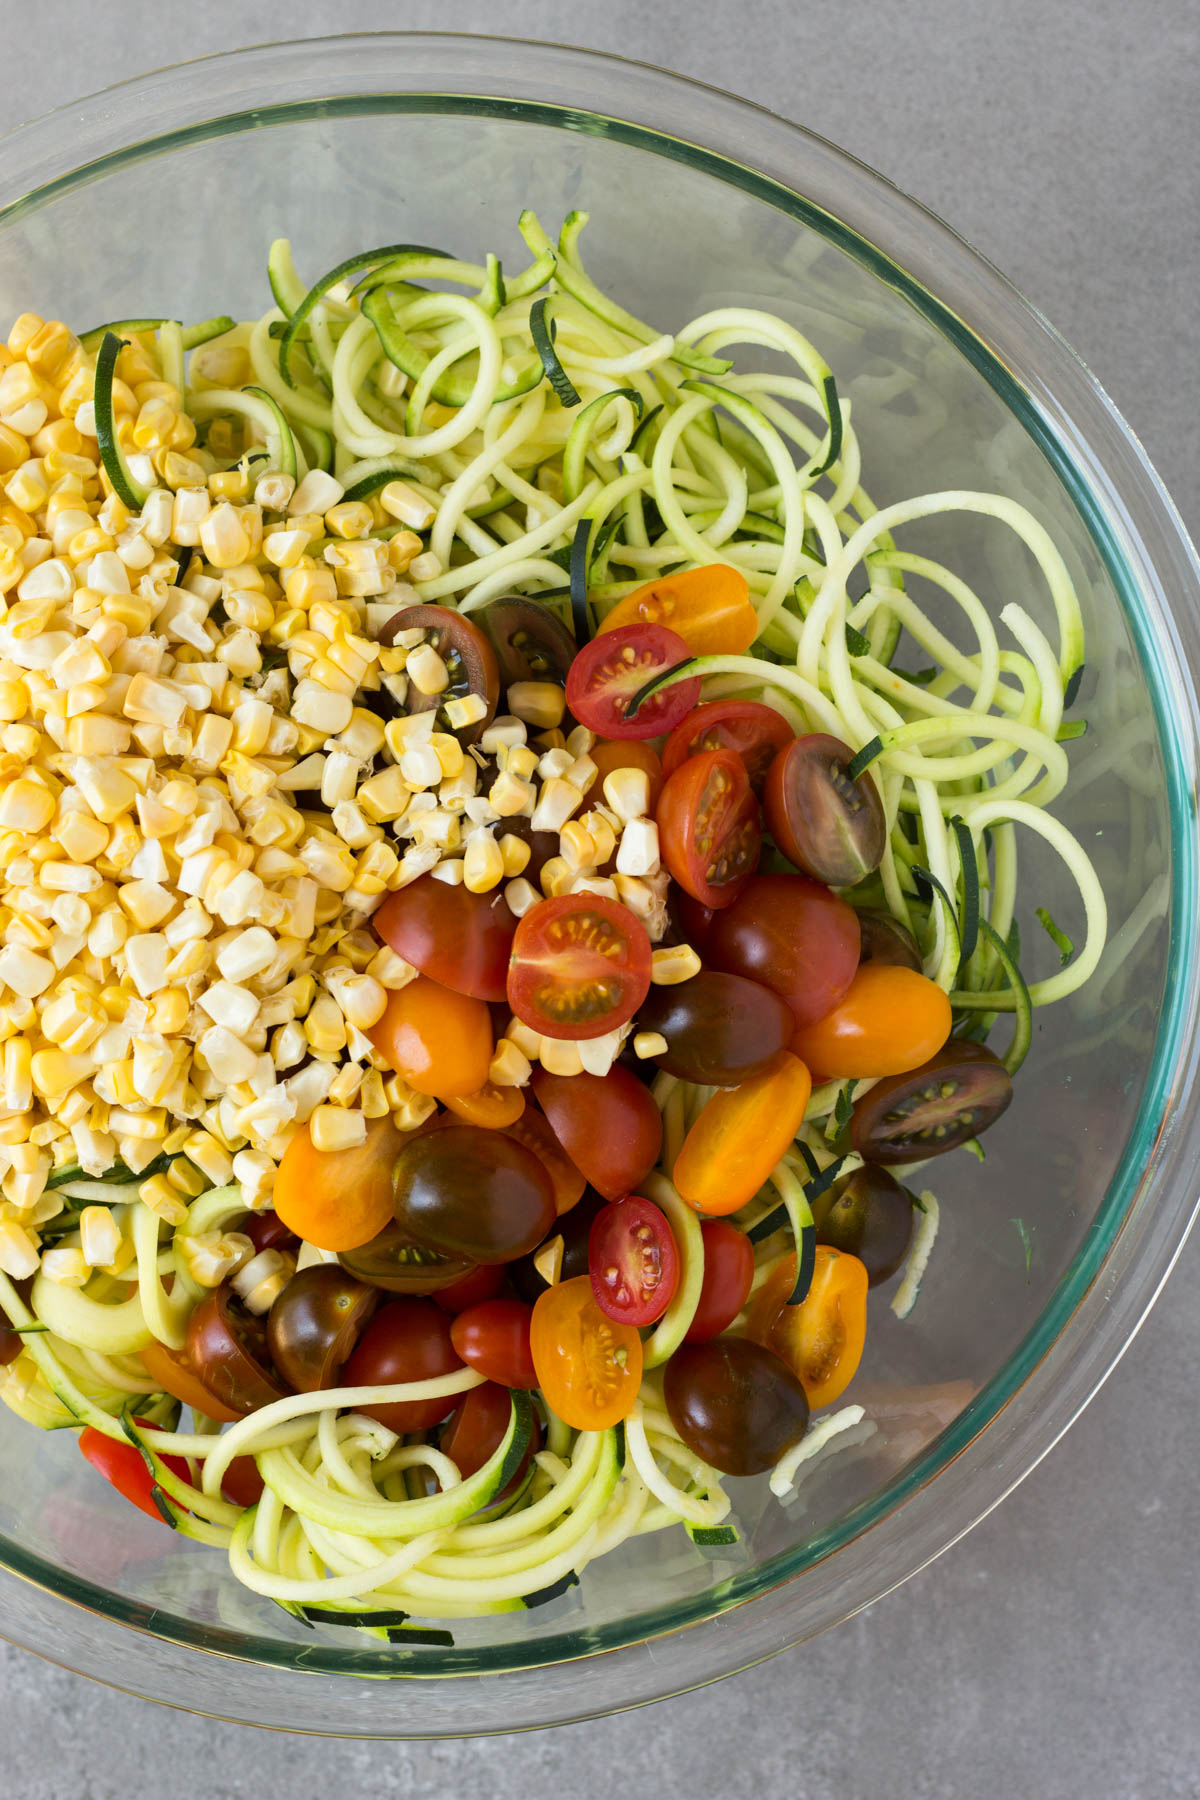 Large glass bowl filled with zucchini noodles, corn, and halved cherry tomatoes.